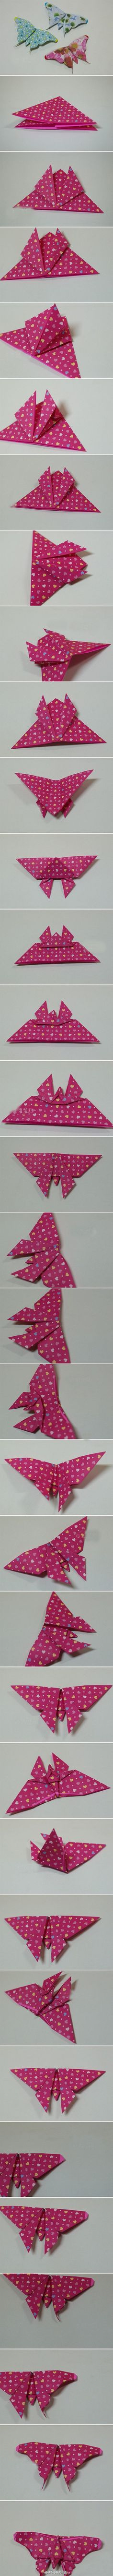 Paper Butterfly tutorial #diy #crafts www.BlueRainbowDesign.com